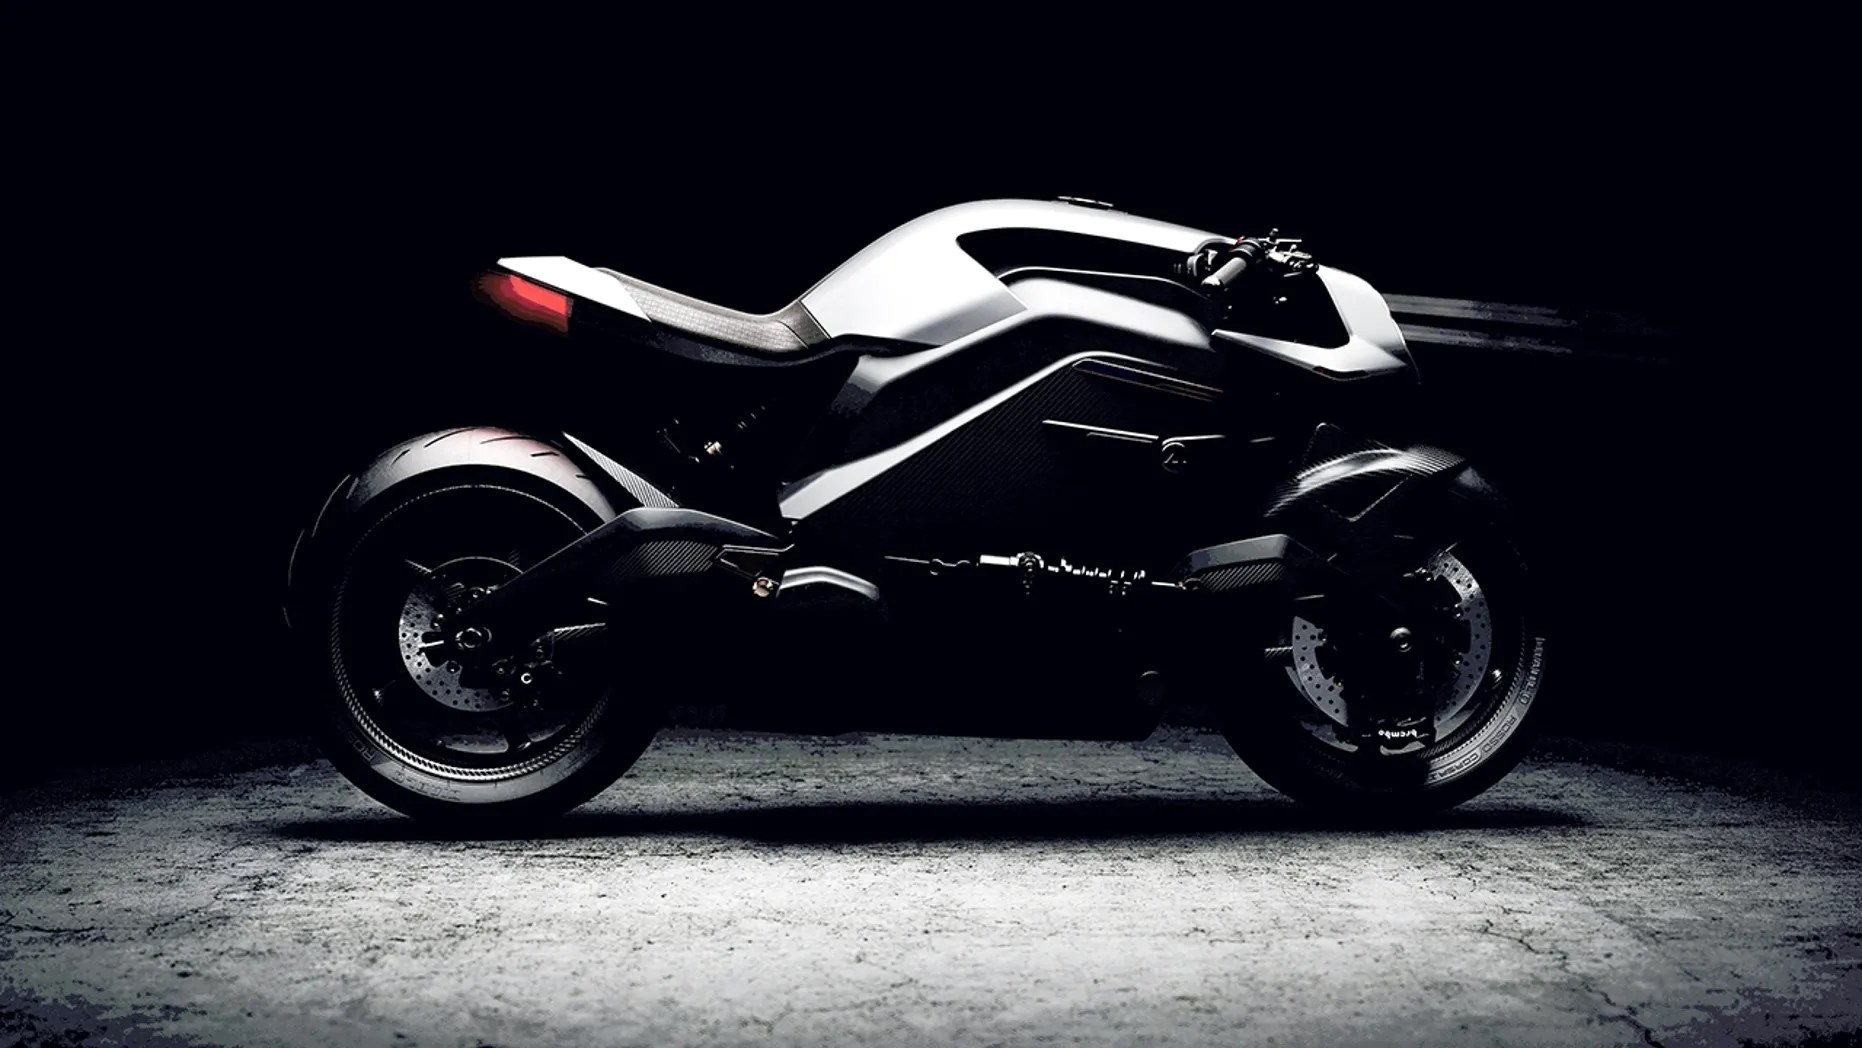 Electric High Tech Iron Man Motorcycle Bike Revealed For